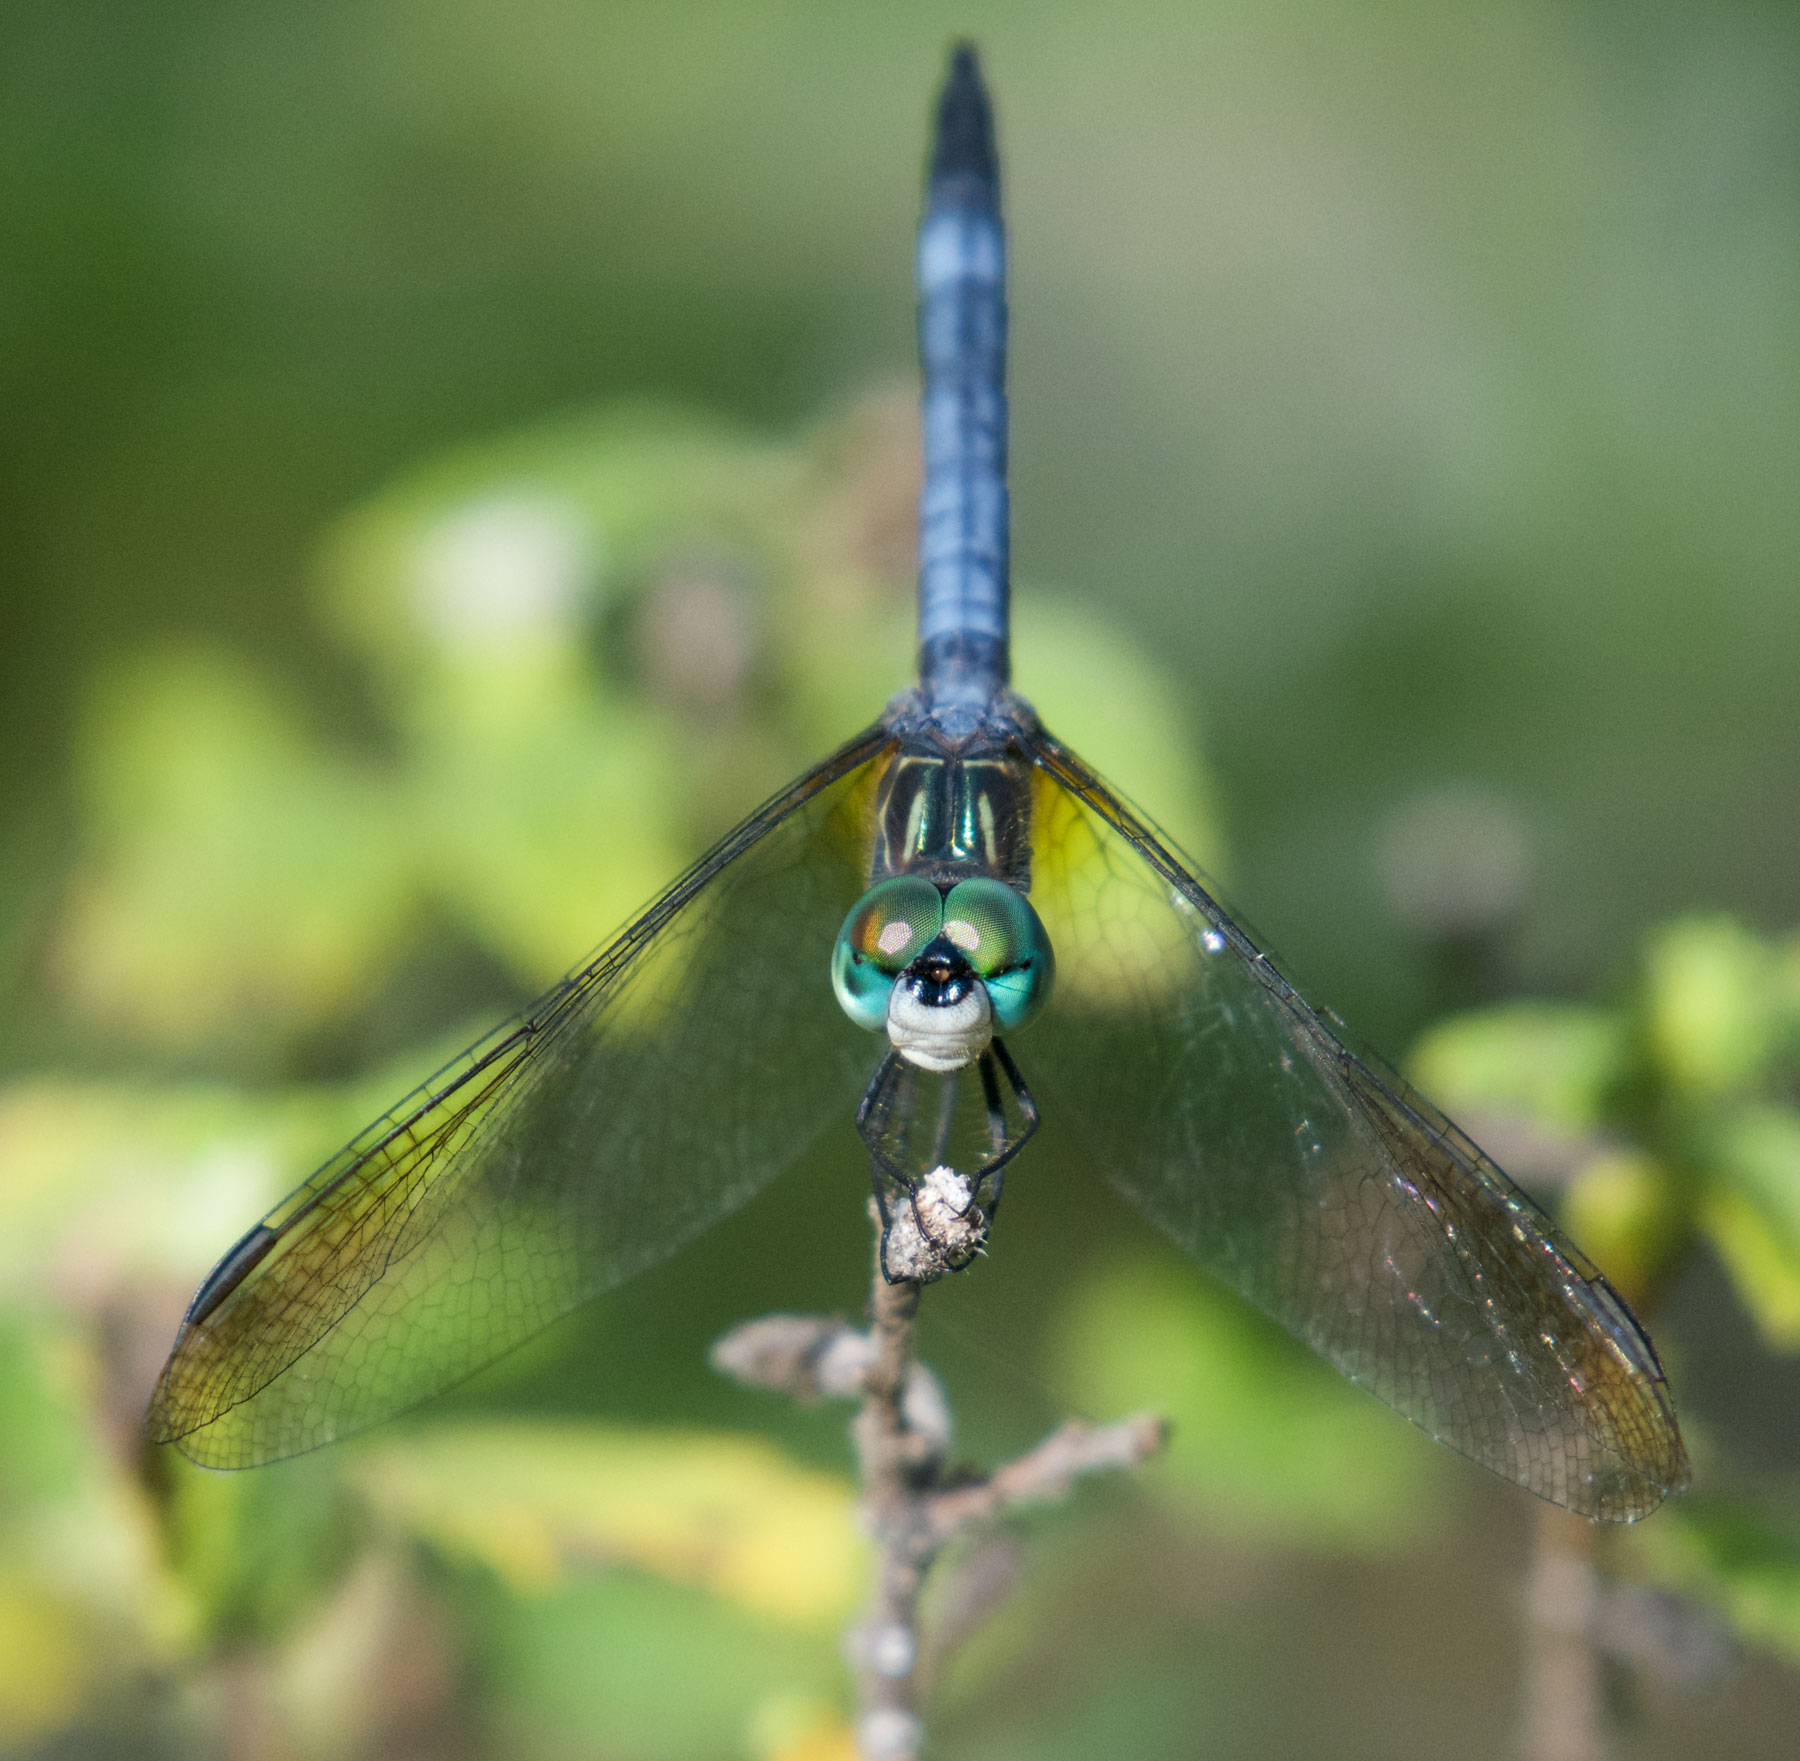 Blue Dasher (Pachydiplax longipennis). Boca Raton, FL, October 9, 2016